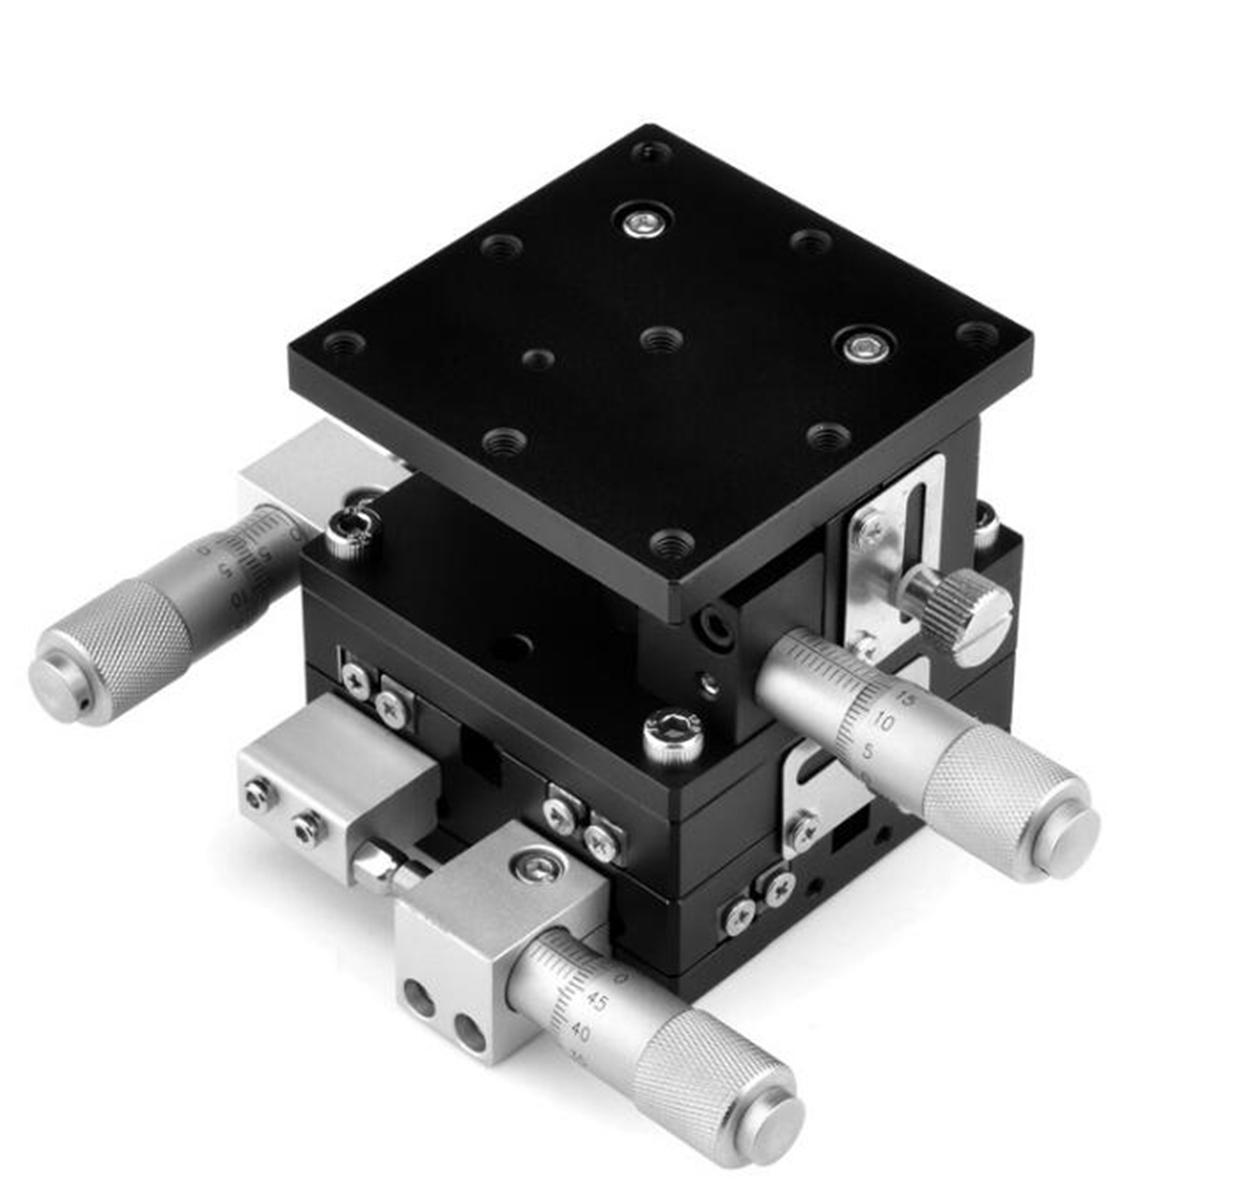 XYZ 60X60mm Inseparable Horizontal Precision Linear Stage Cross-roller Bearing For Automation Sliding Linear CNC PhotologyXYZ 60X60mm Inseparable Horizontal Precision Linear Stage Cross-roller Bearing For Automation Sliding Linear CNC Photology